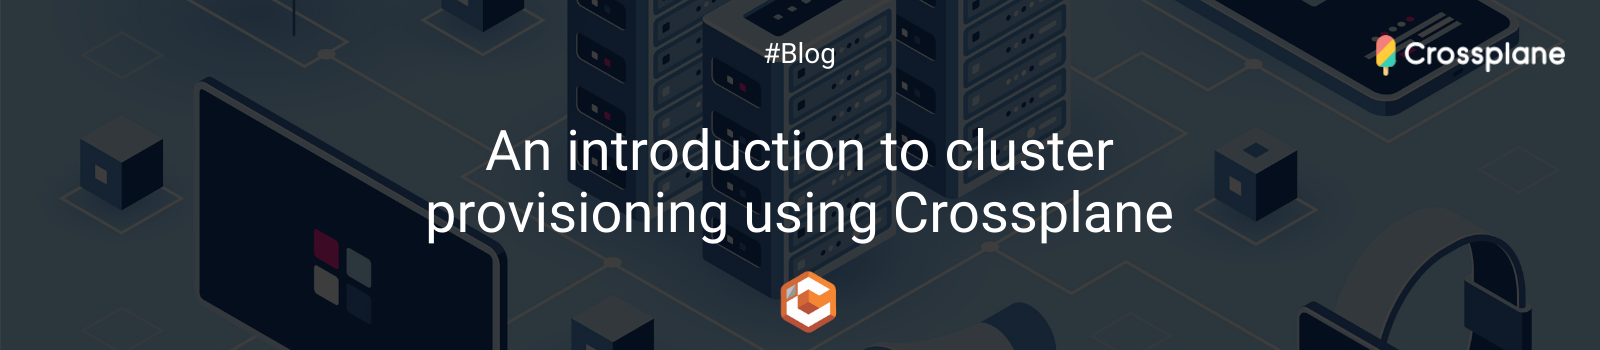 An introduction to cluster provisioning using Crossplane